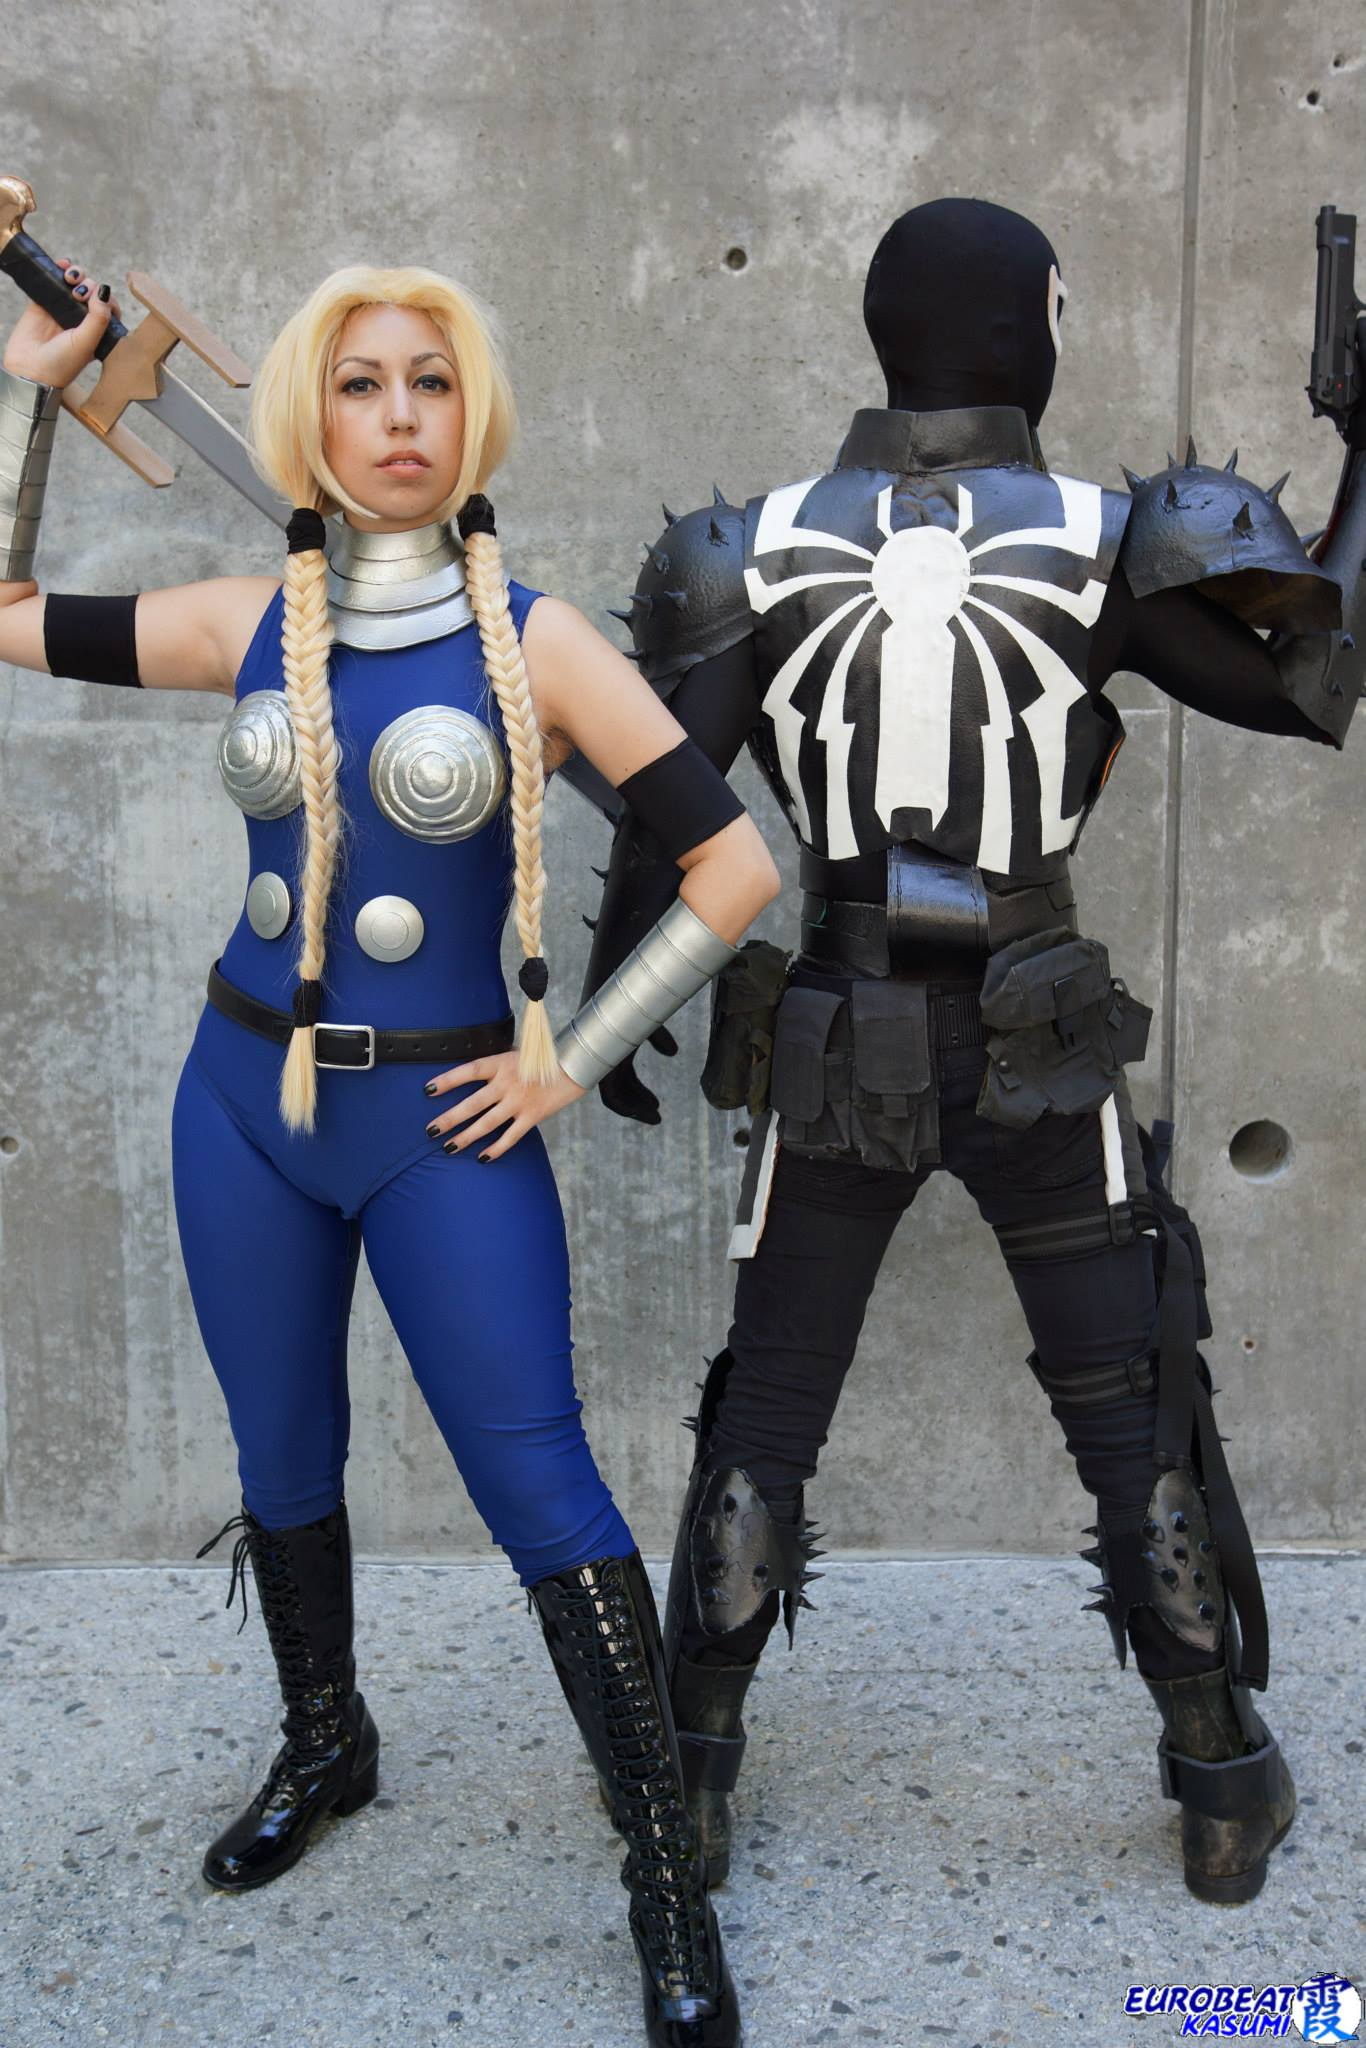 valkyrie marvel costume - photo #14